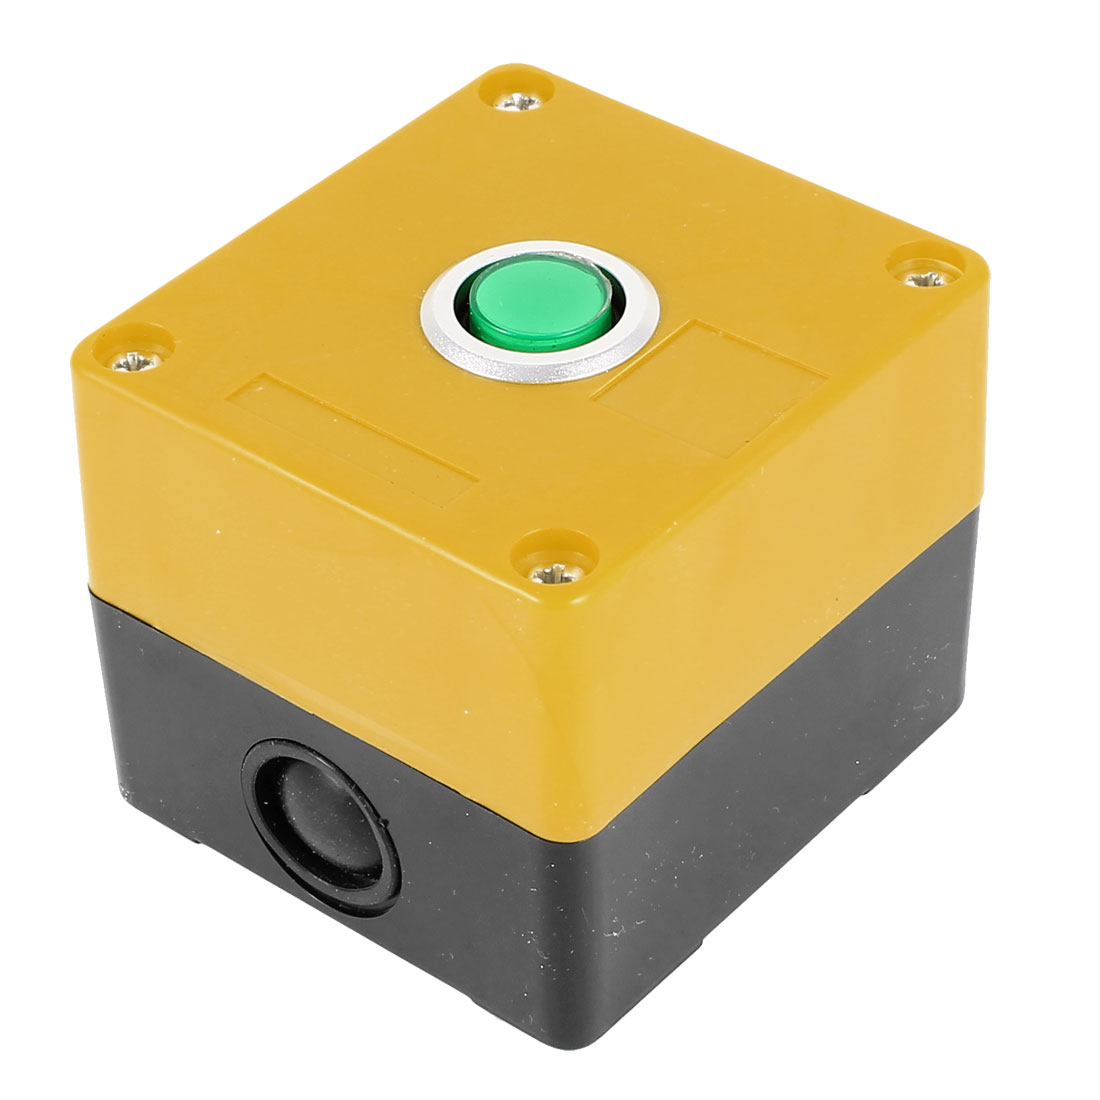 DC 24V Green Light Lamp SPDT 1 NO 1 NC 5-Pin Soldering Self-Latching Action Push Button Control Station Box